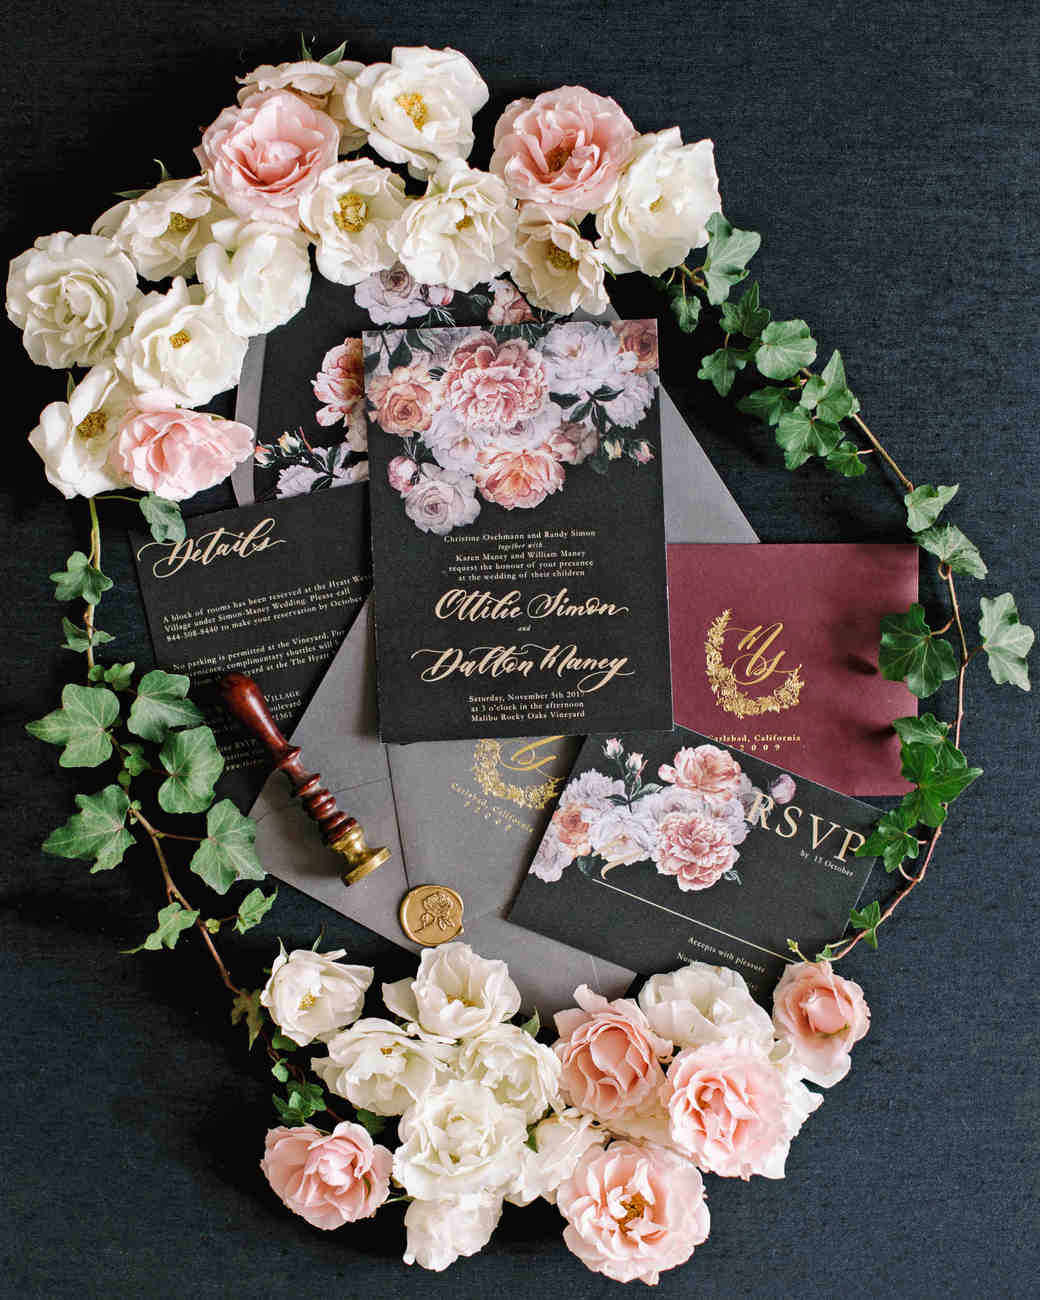 tillie dalton wedding stationery